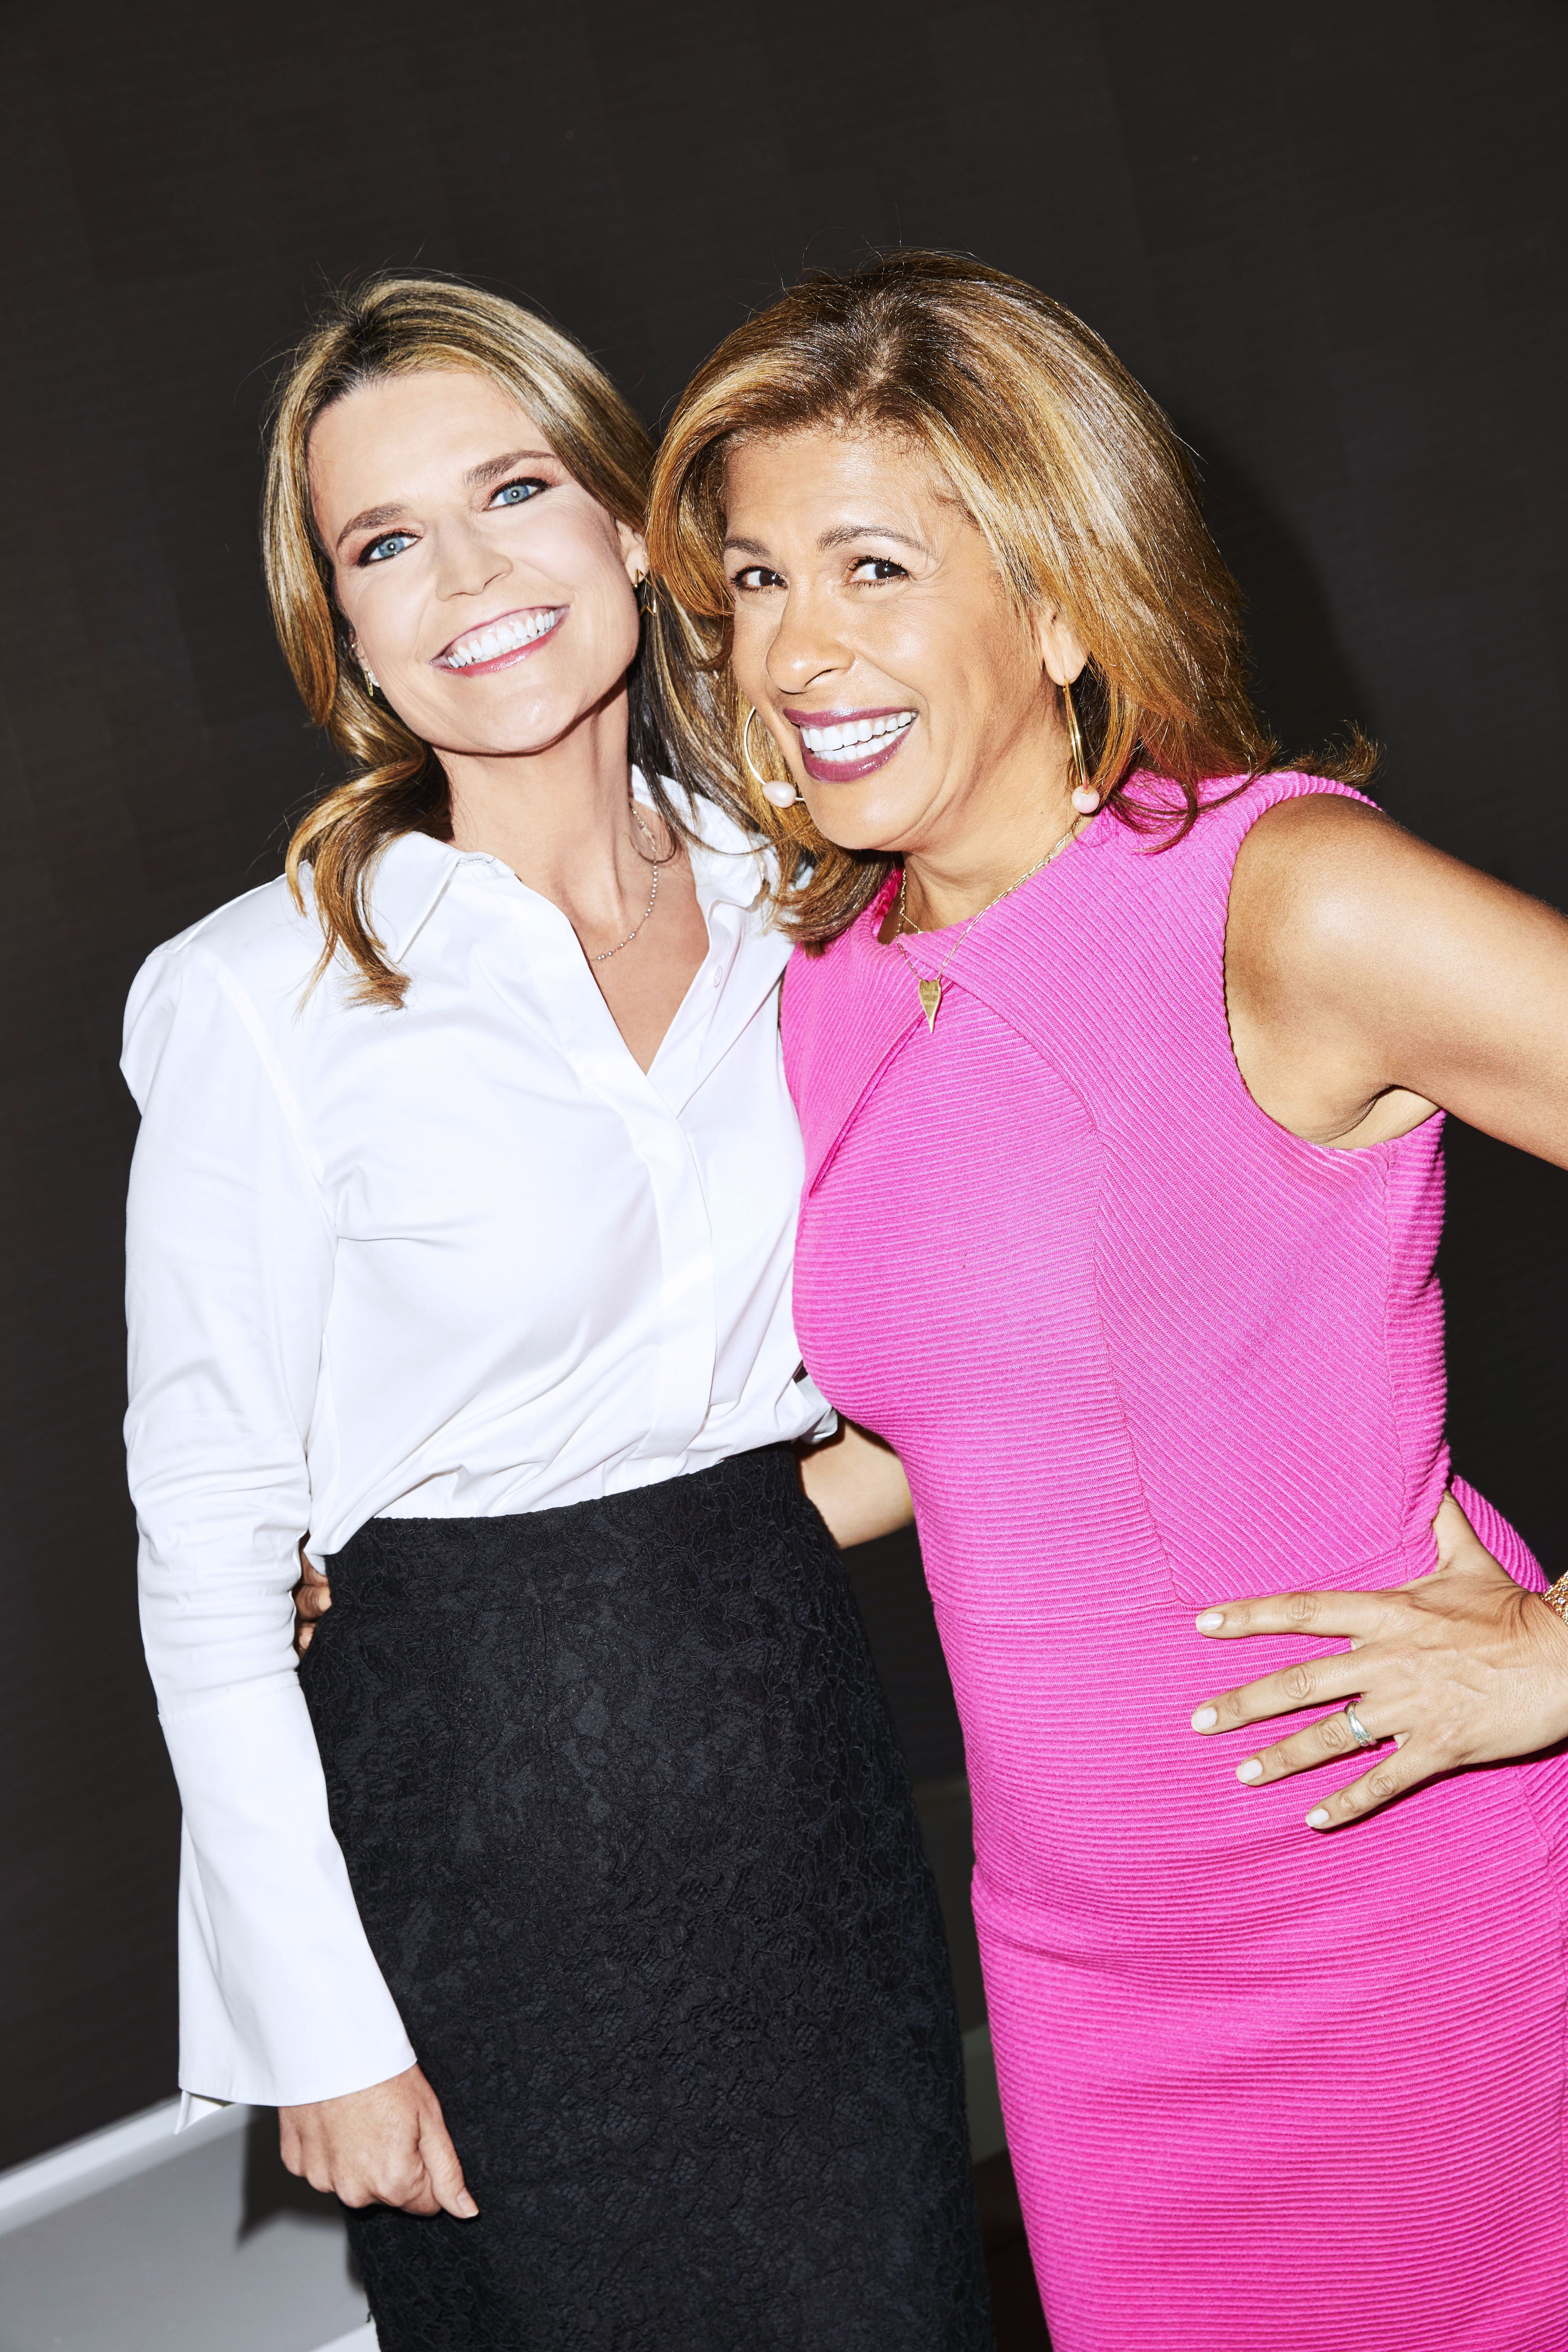 Savannah Guthrie And Hoda Kotb On Being Co Hosts Of The Today Show